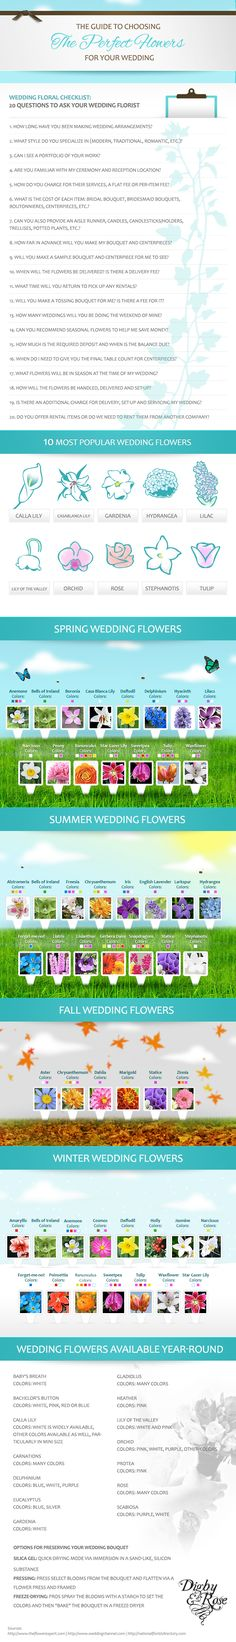 WED - The Magazine: a digital wedding magazine for today's Bride & Groom - WED for Brides - Complete Guide to Choosing The Perfect Wedding Flowers {Infographic from Digby & Rose}